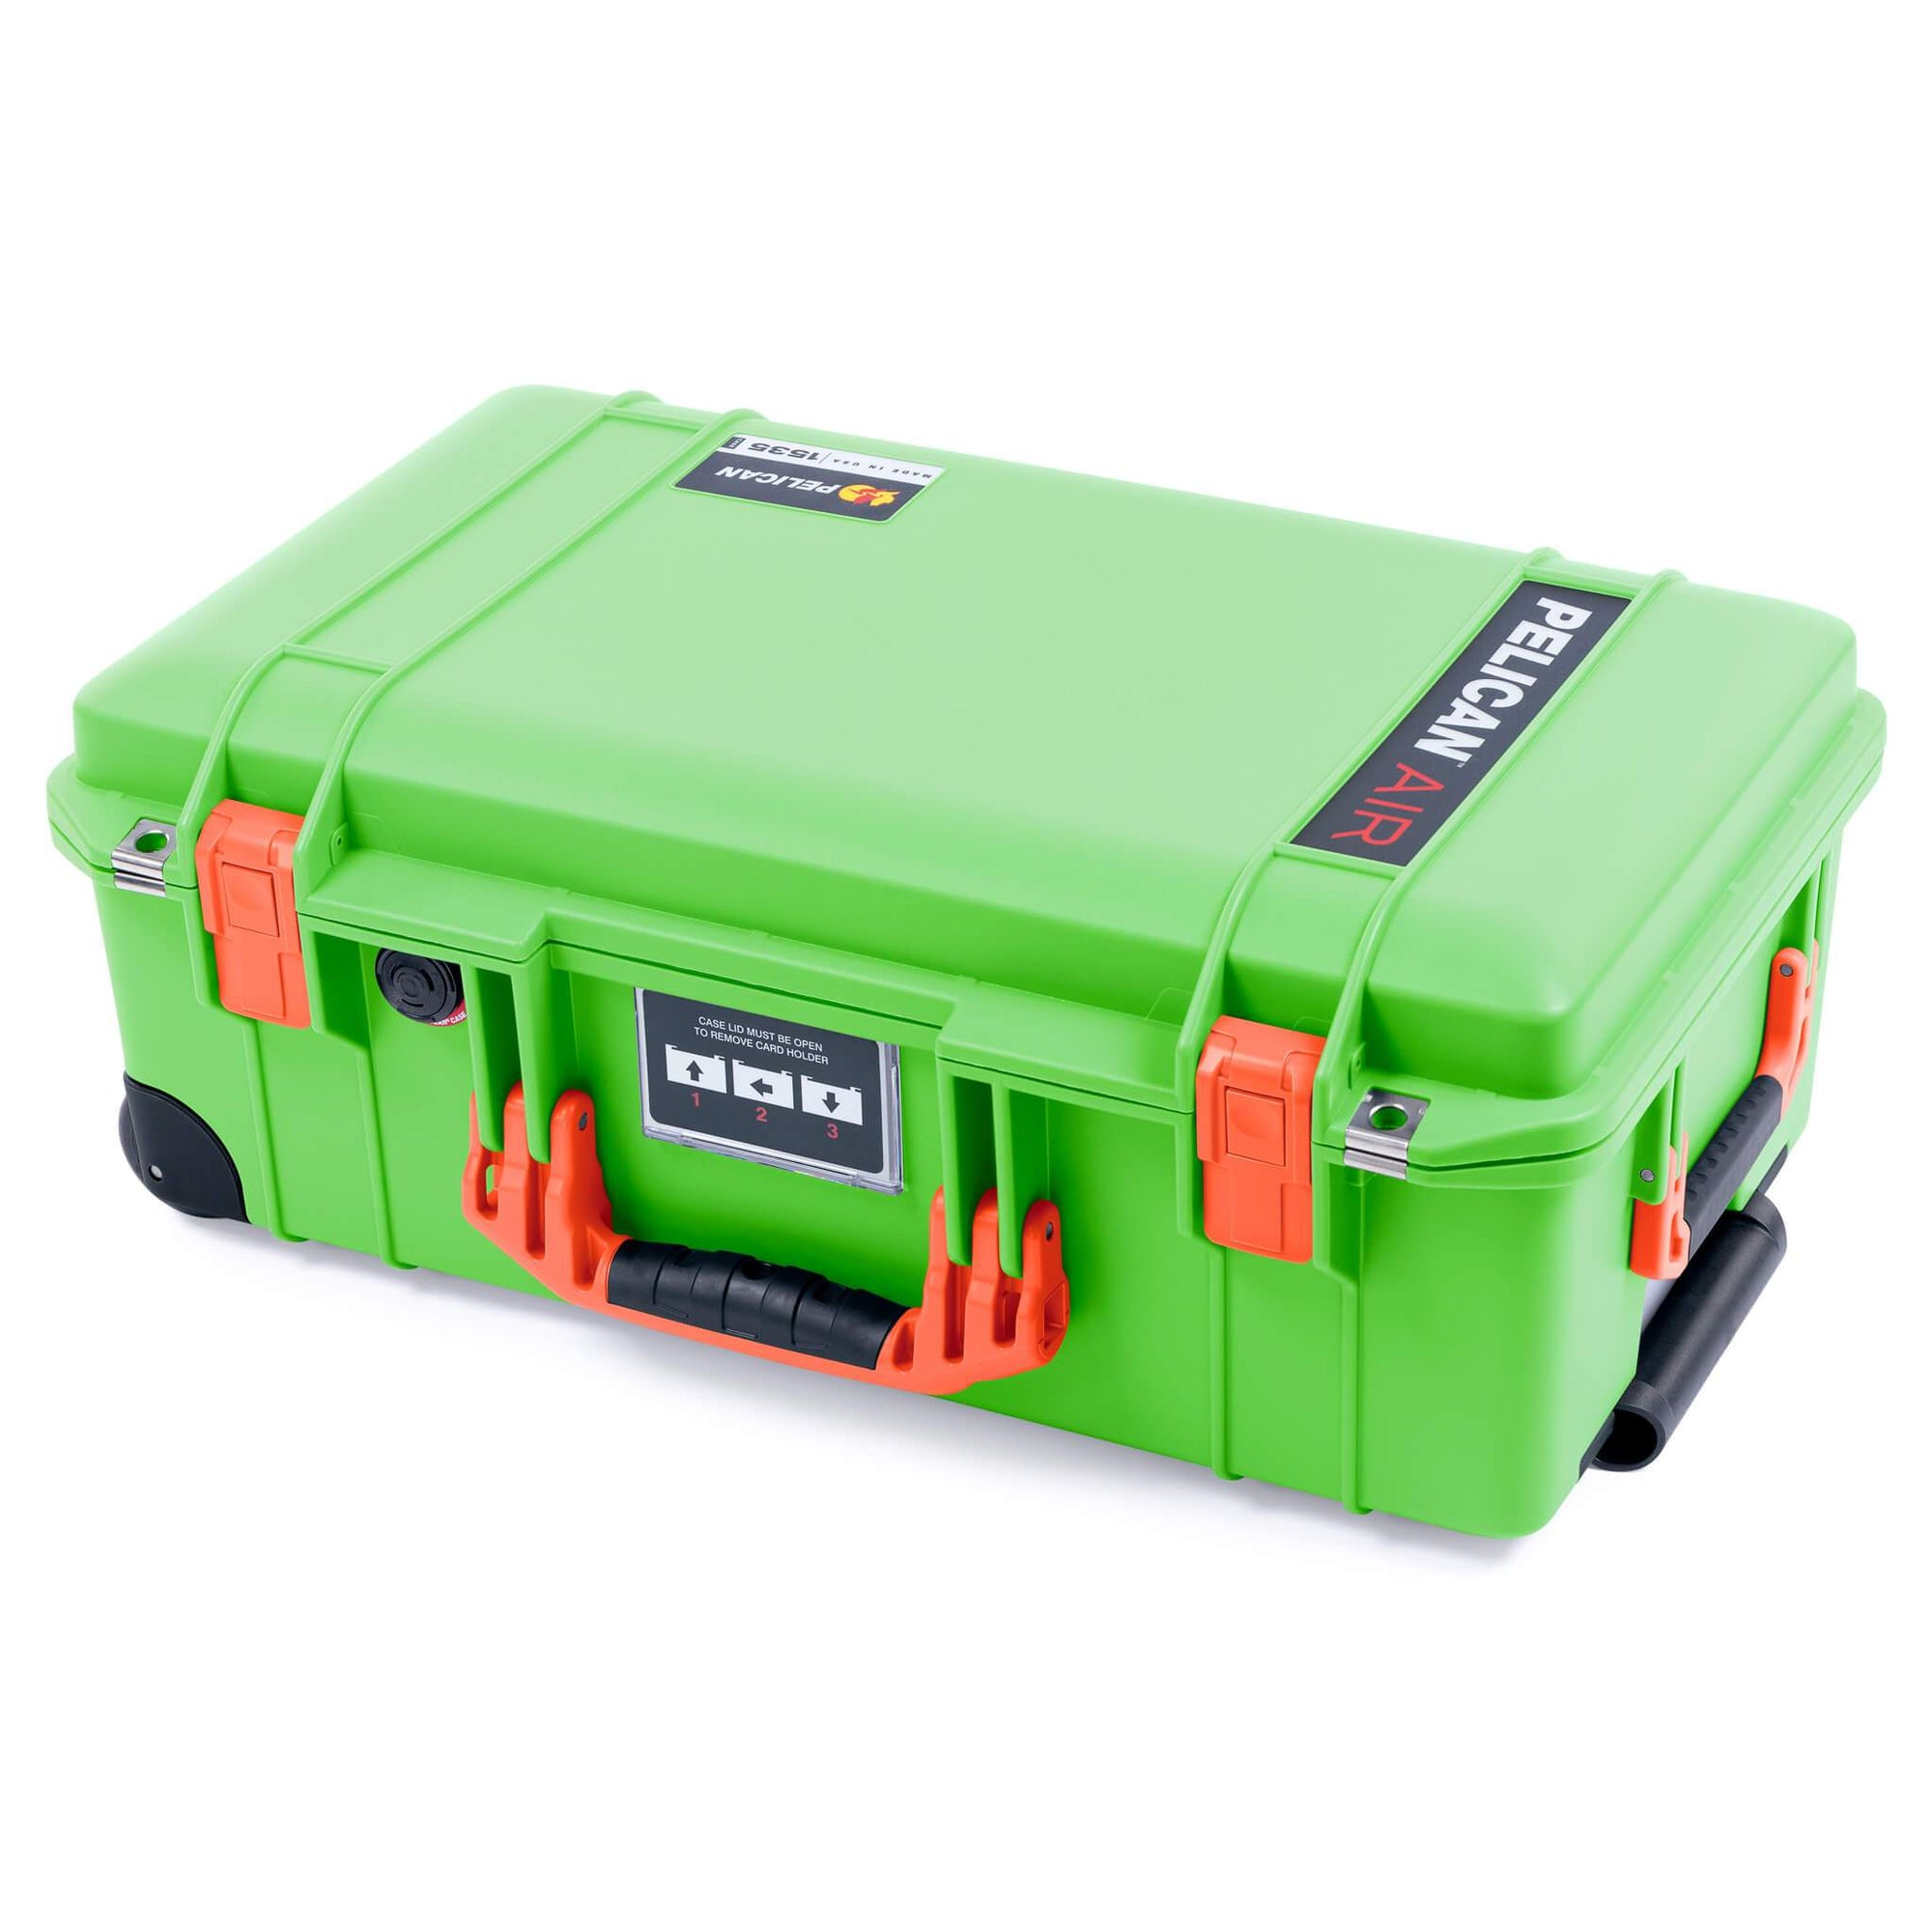 Pelican 1535 Air Case, Lime Green with Orange Handles & Latches